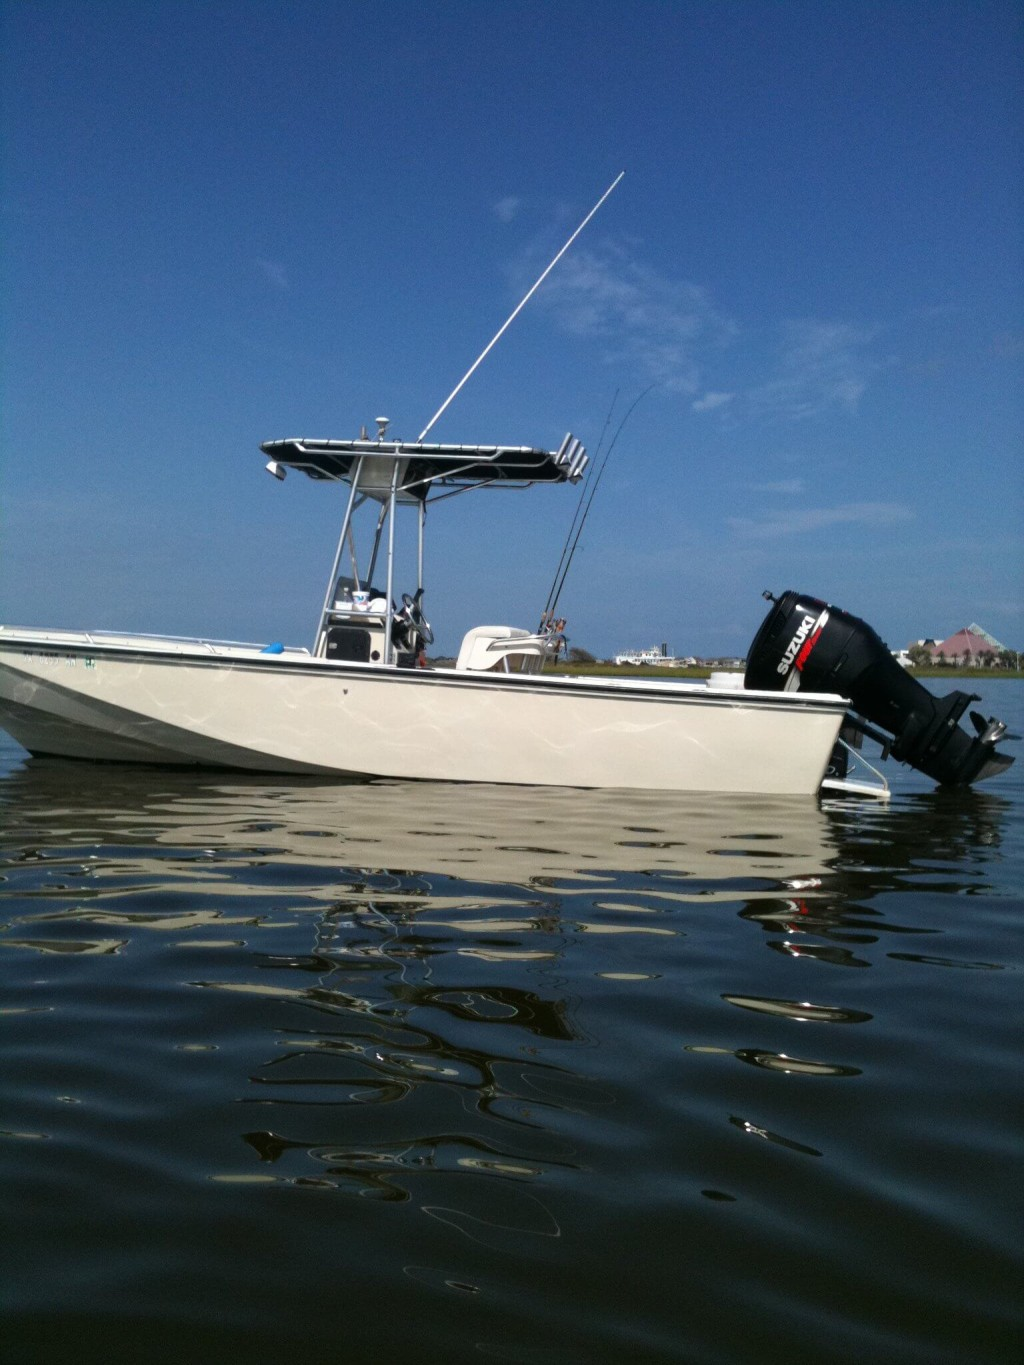 22' Boston Whaler Inshore / Jetty | Captain Experiences